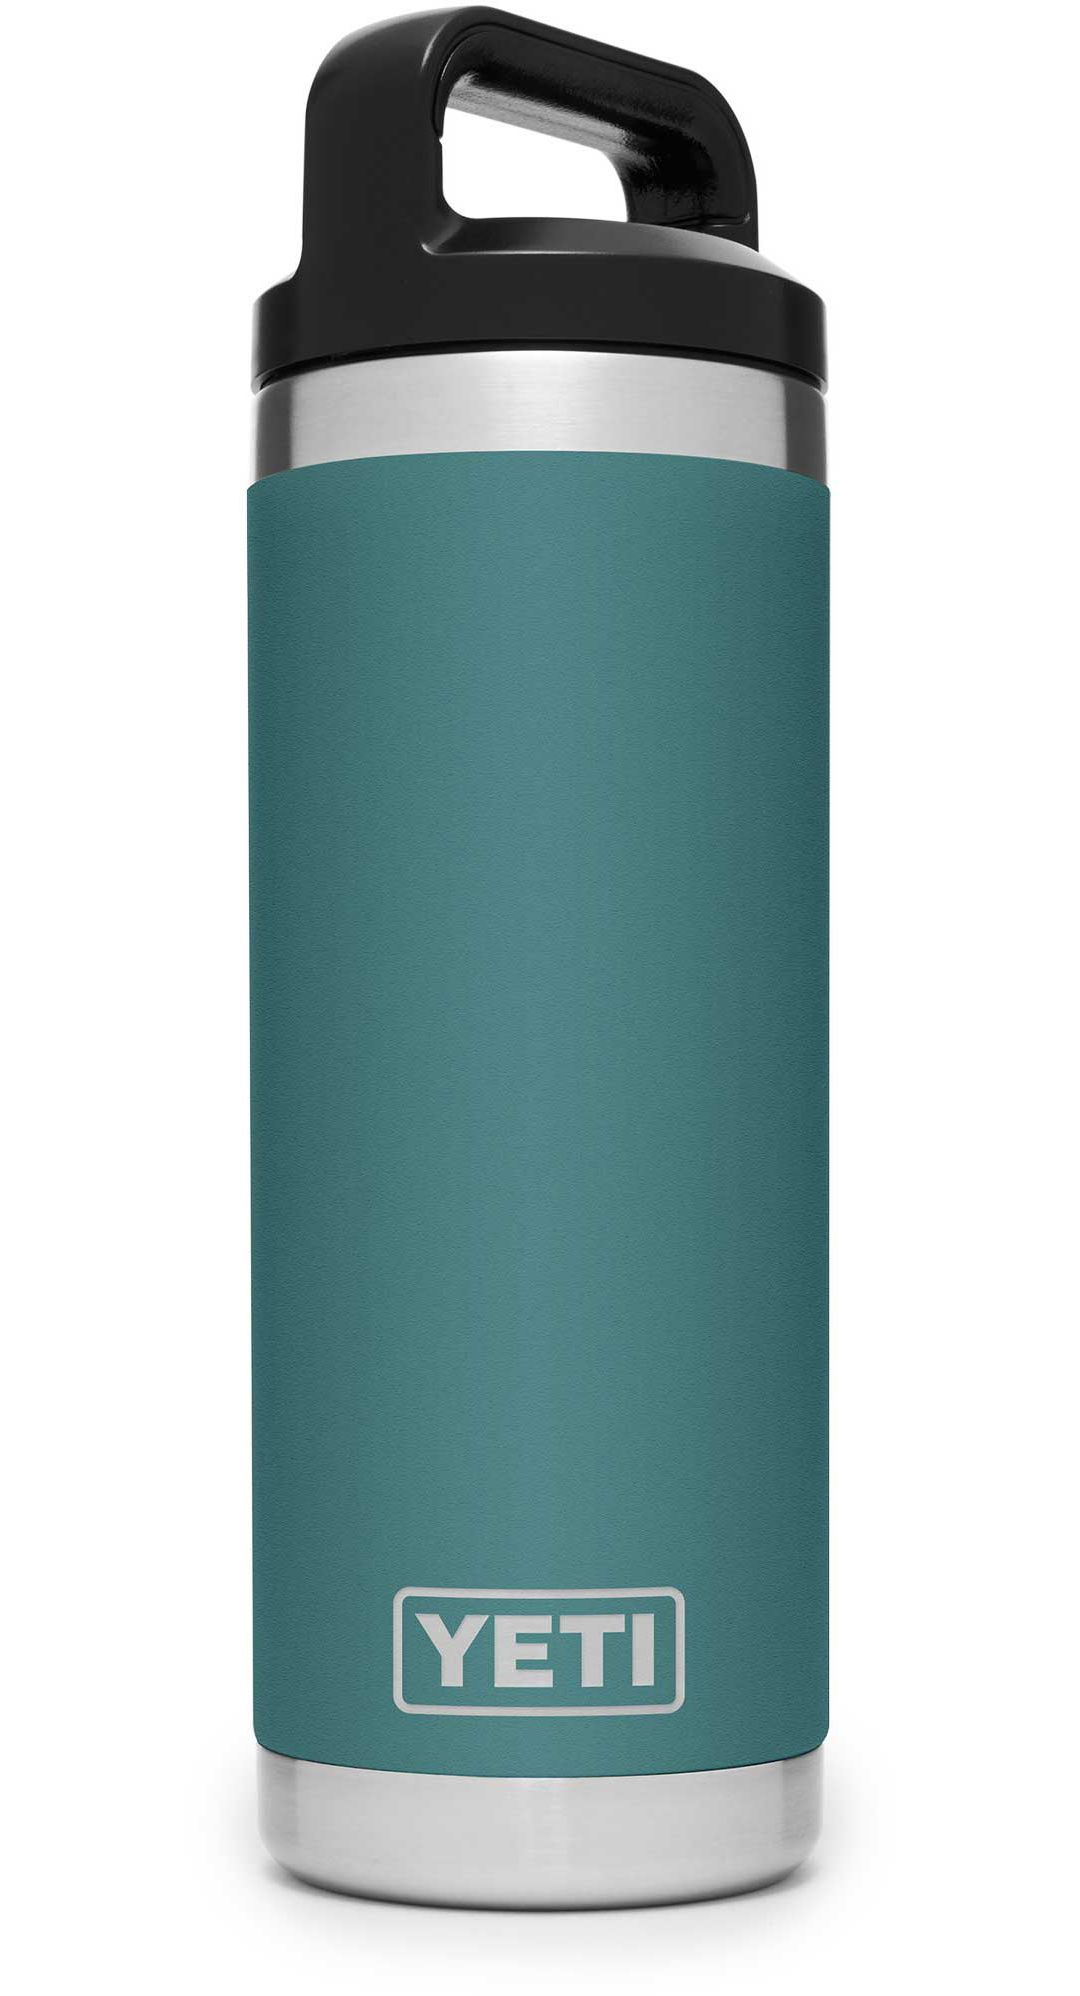 85fde01813f5 YETI 18 oz. Rambler Bottle